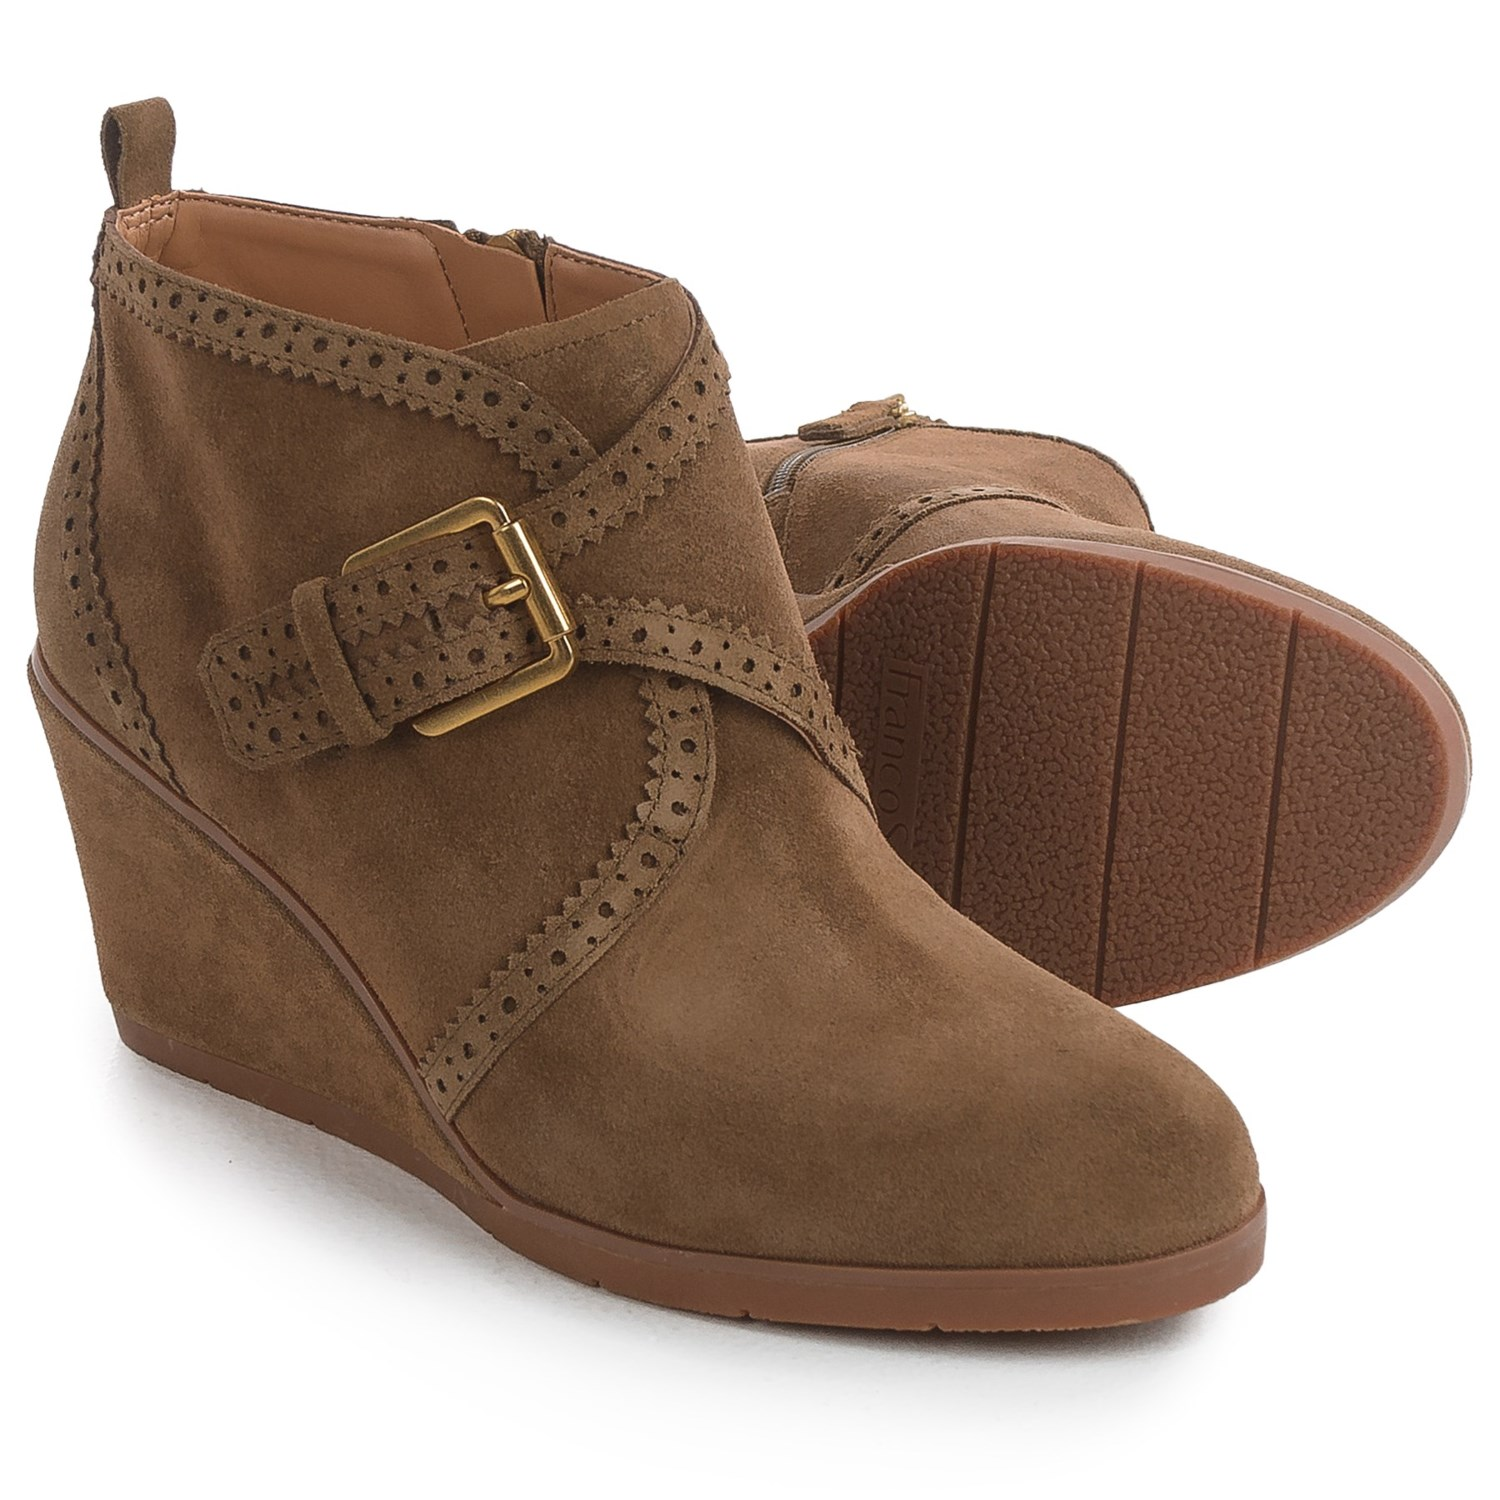 Franco Sarto Arielle Boots - Suede, Wedge Heel (For Women) in Desert Khaki - Franco Sarto Arielle Boots (For Women) - Save 45%